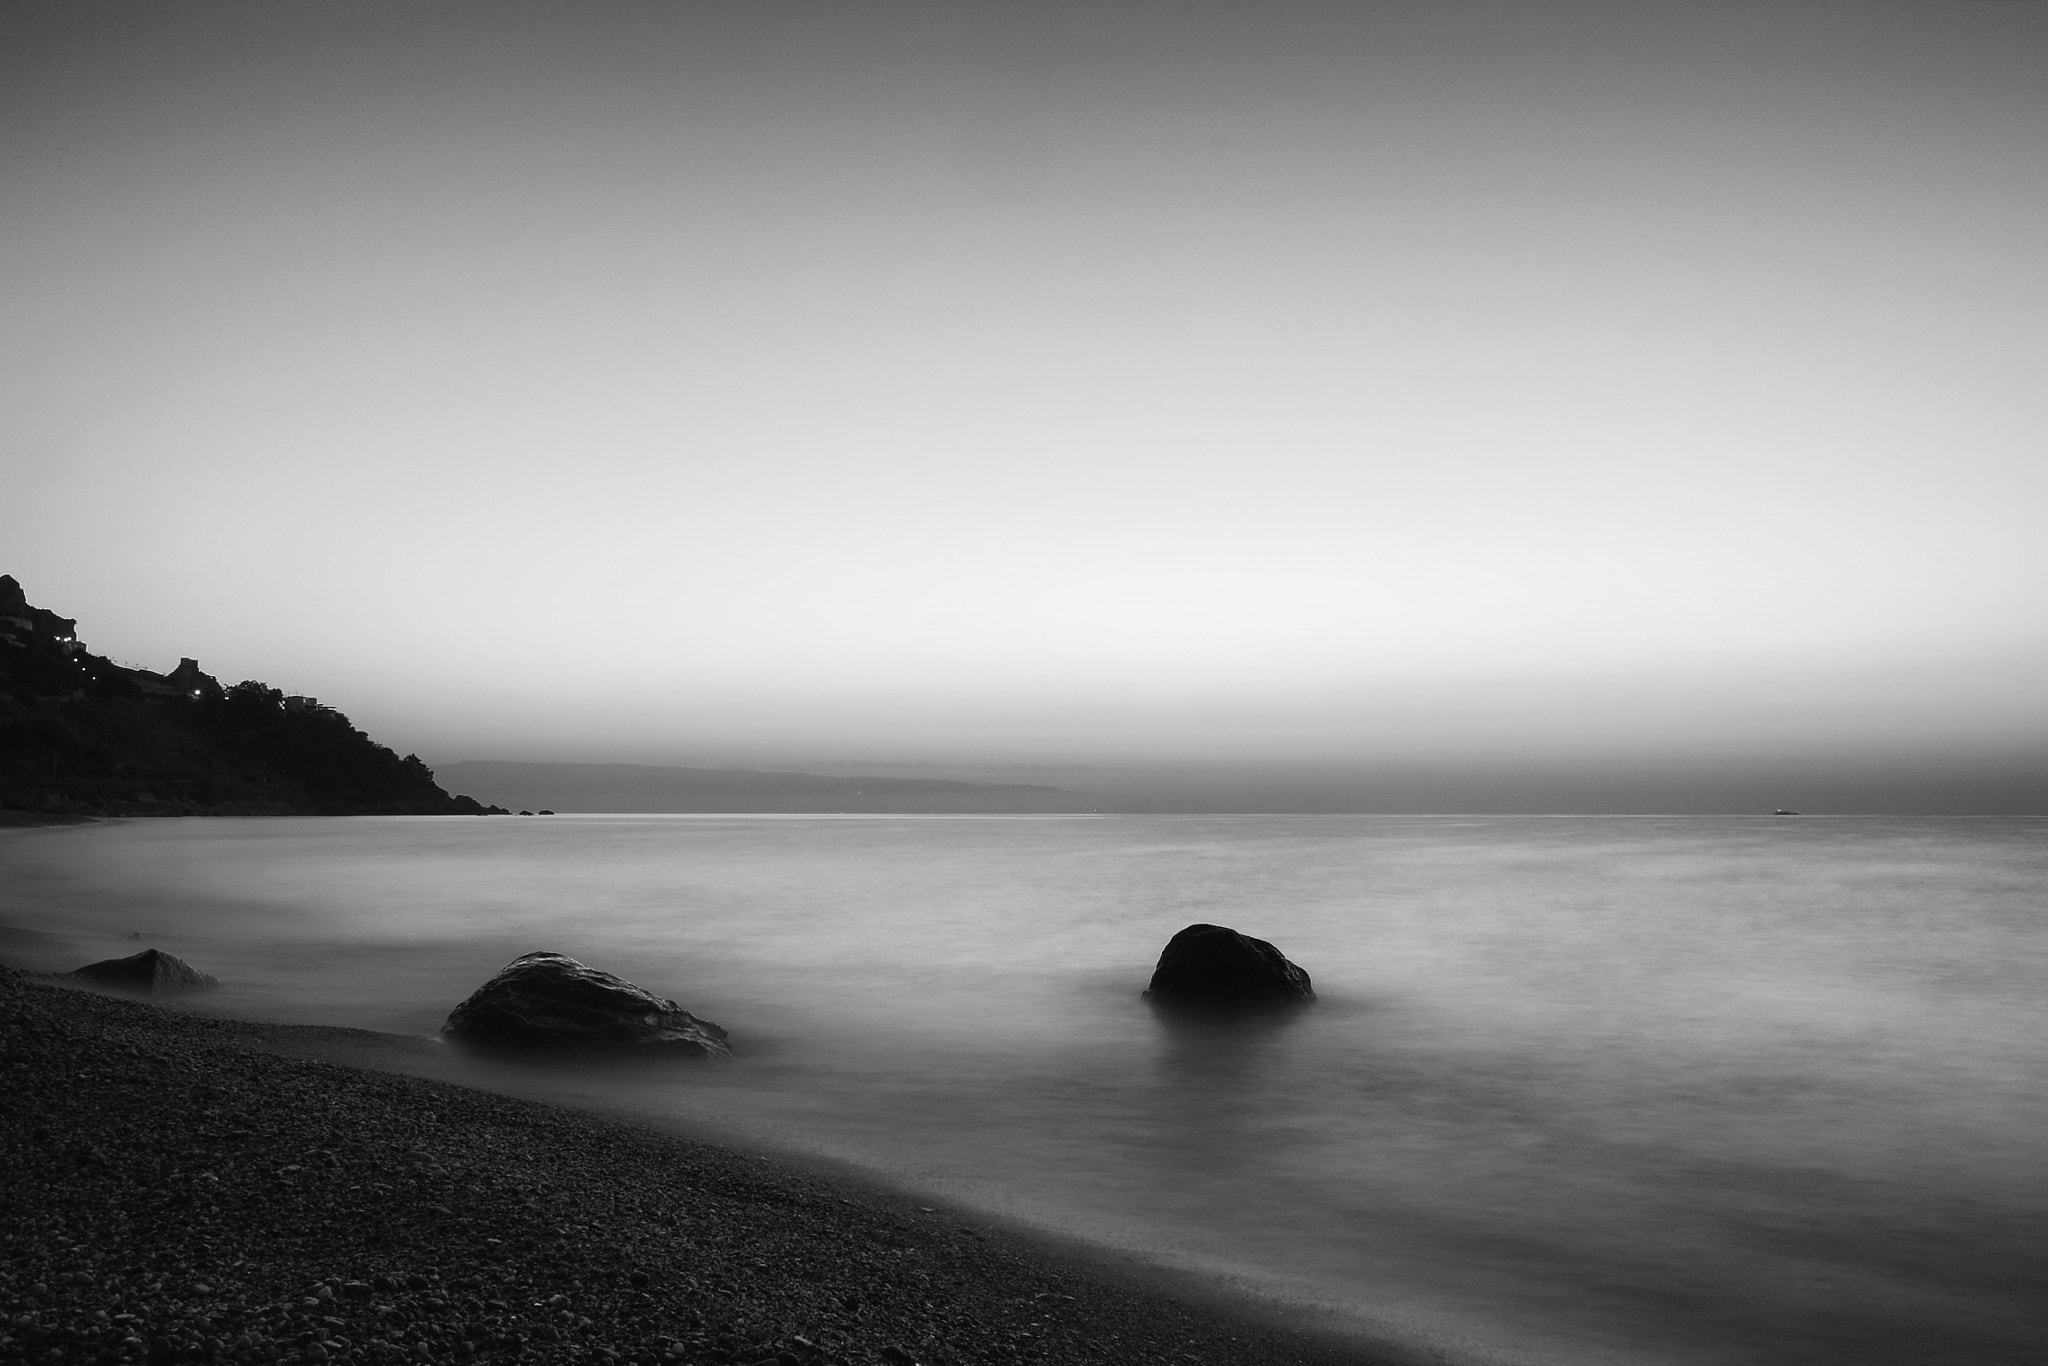 Photograph Solitude aeternus by Salvo Mangiaglia on 500px